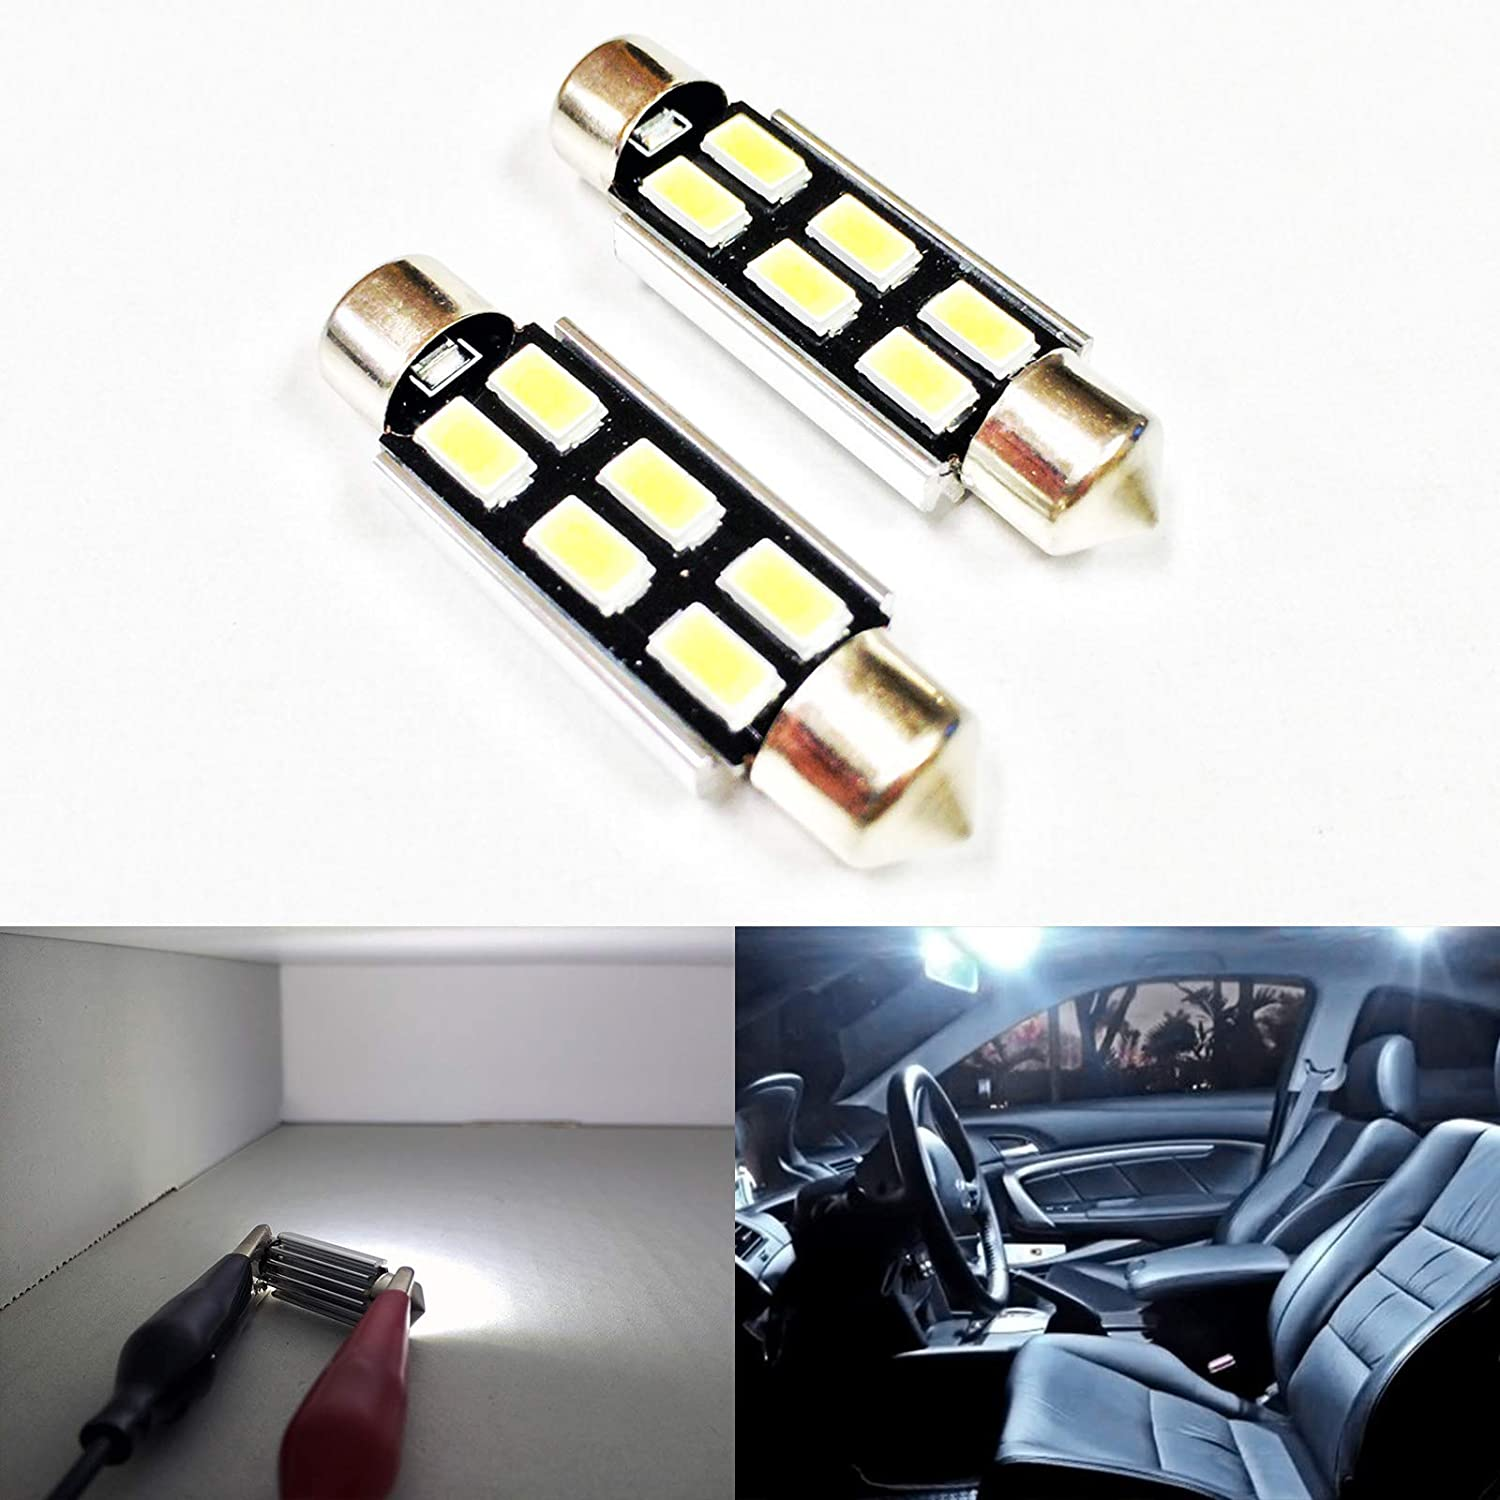 SOCAL-LED 2x 3022 31mm Festoon LED Bulbs Canbus 6W High Power Bright SMD 5730 Interior Dome Light, Map Light, Red